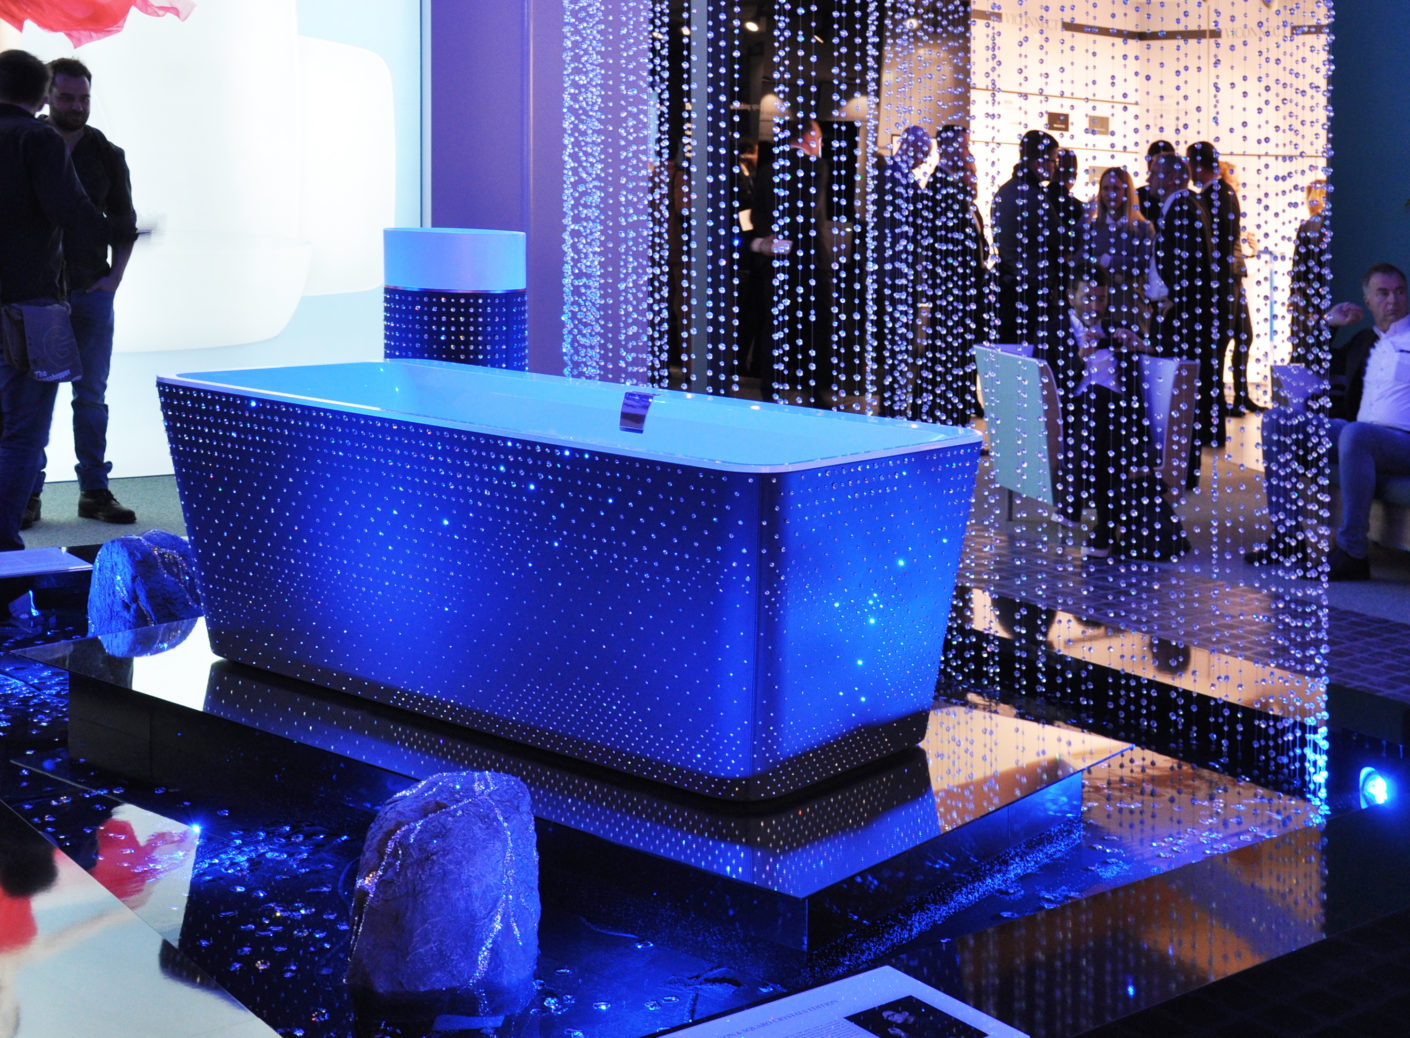 Big appearance: Villeroy&Boch, in collaboration with Swarovski, has presented a sparkling bath of Chinese designer Steve Leung.